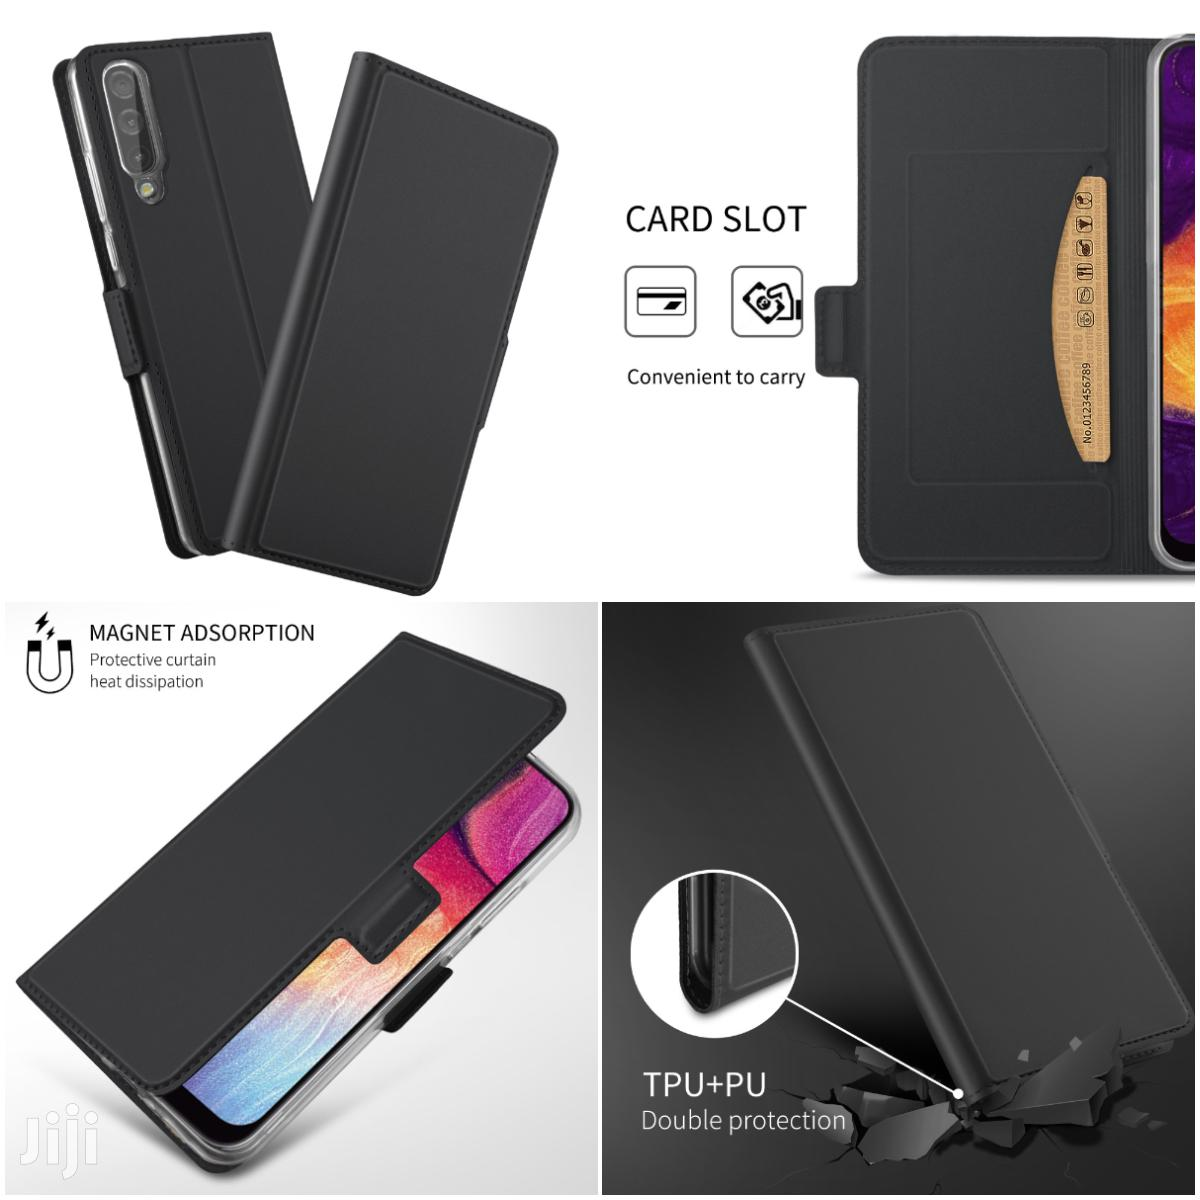 Magnetic Adsorption Flip Case With Card Holder Black | Accessories for Mobile Phones & Tablets for sale in Mvita, Mombasa, Kenya